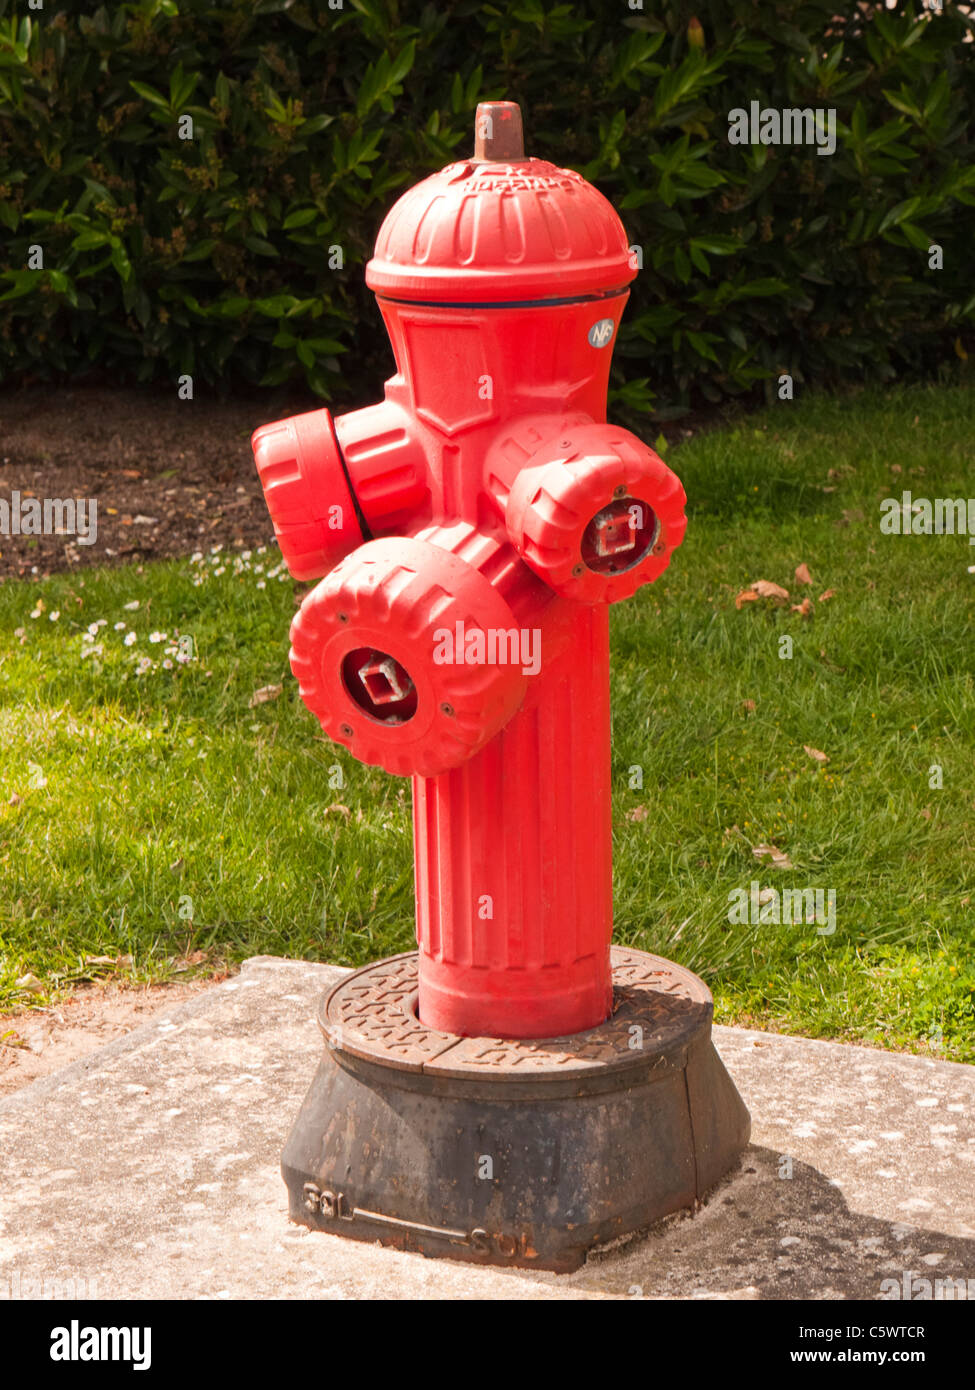 Close-up of a red French roadside Fire hydrant - Stock Image